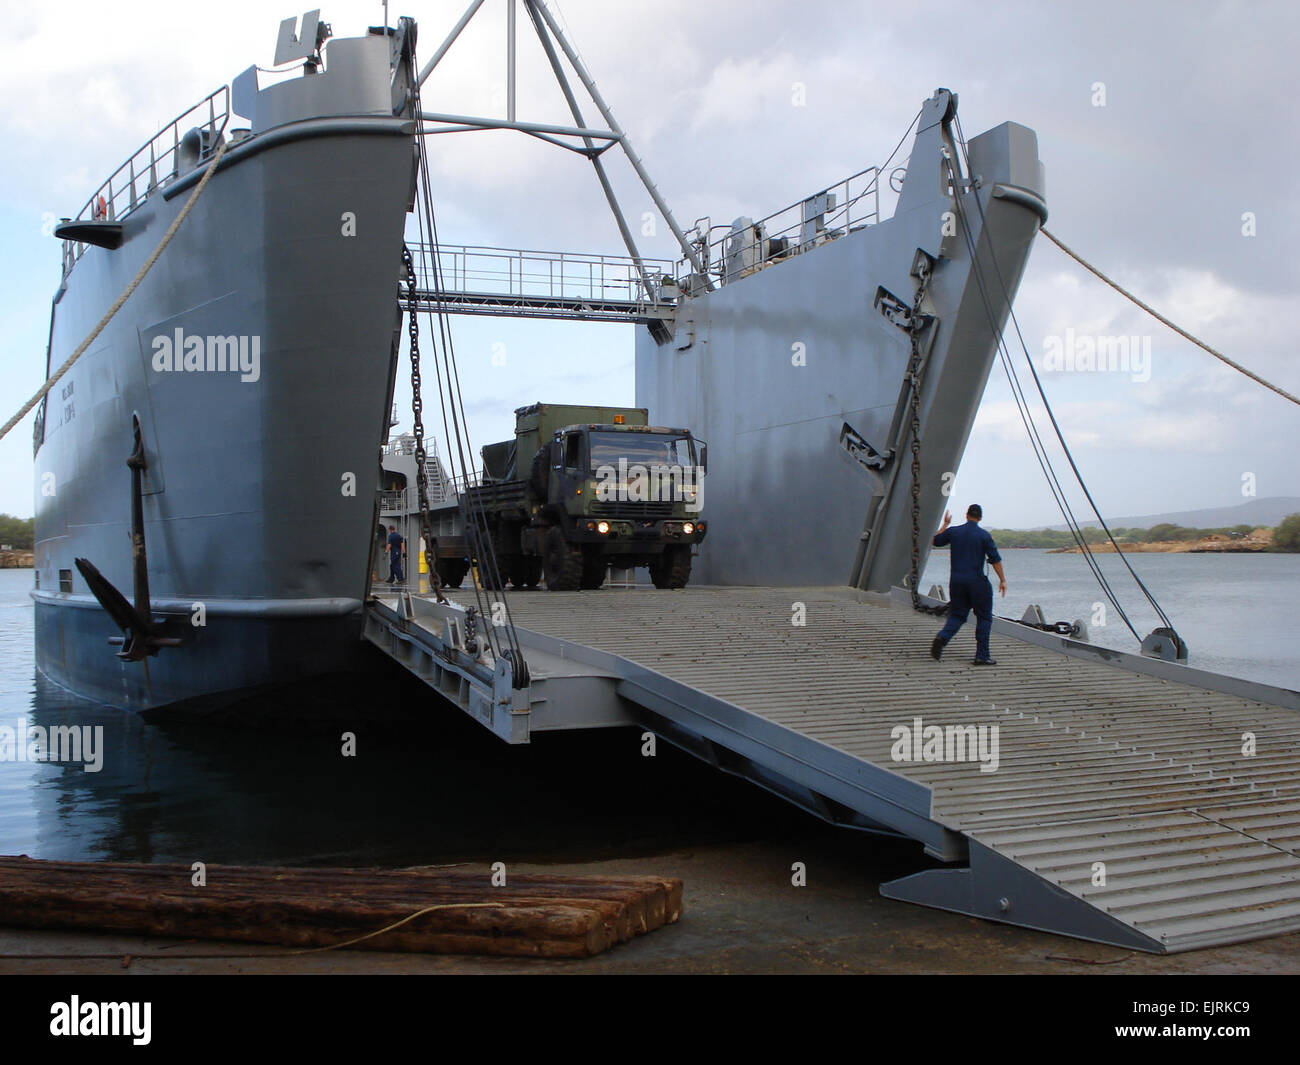 Army Logistics support vessel MG Charles P. Gross is loaded up with 307th Signal Battalion's communications vehicles Stock Photo